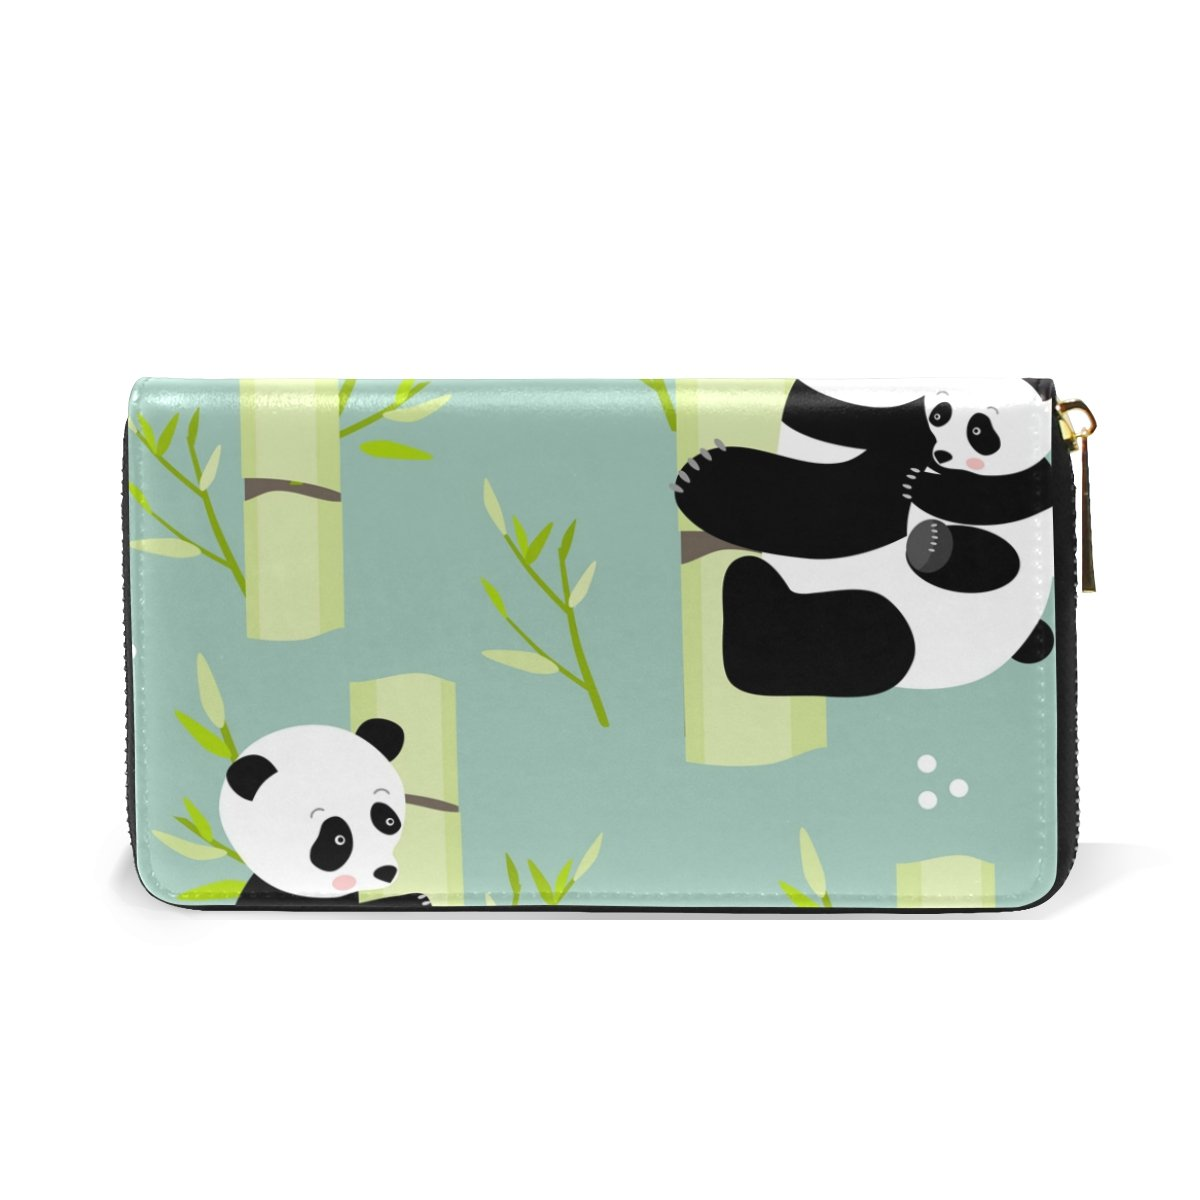 LAVOVO Cute Pandas on a Bamboo Womens Clutch Purses Organizer And Handbags Zip Around Wallet